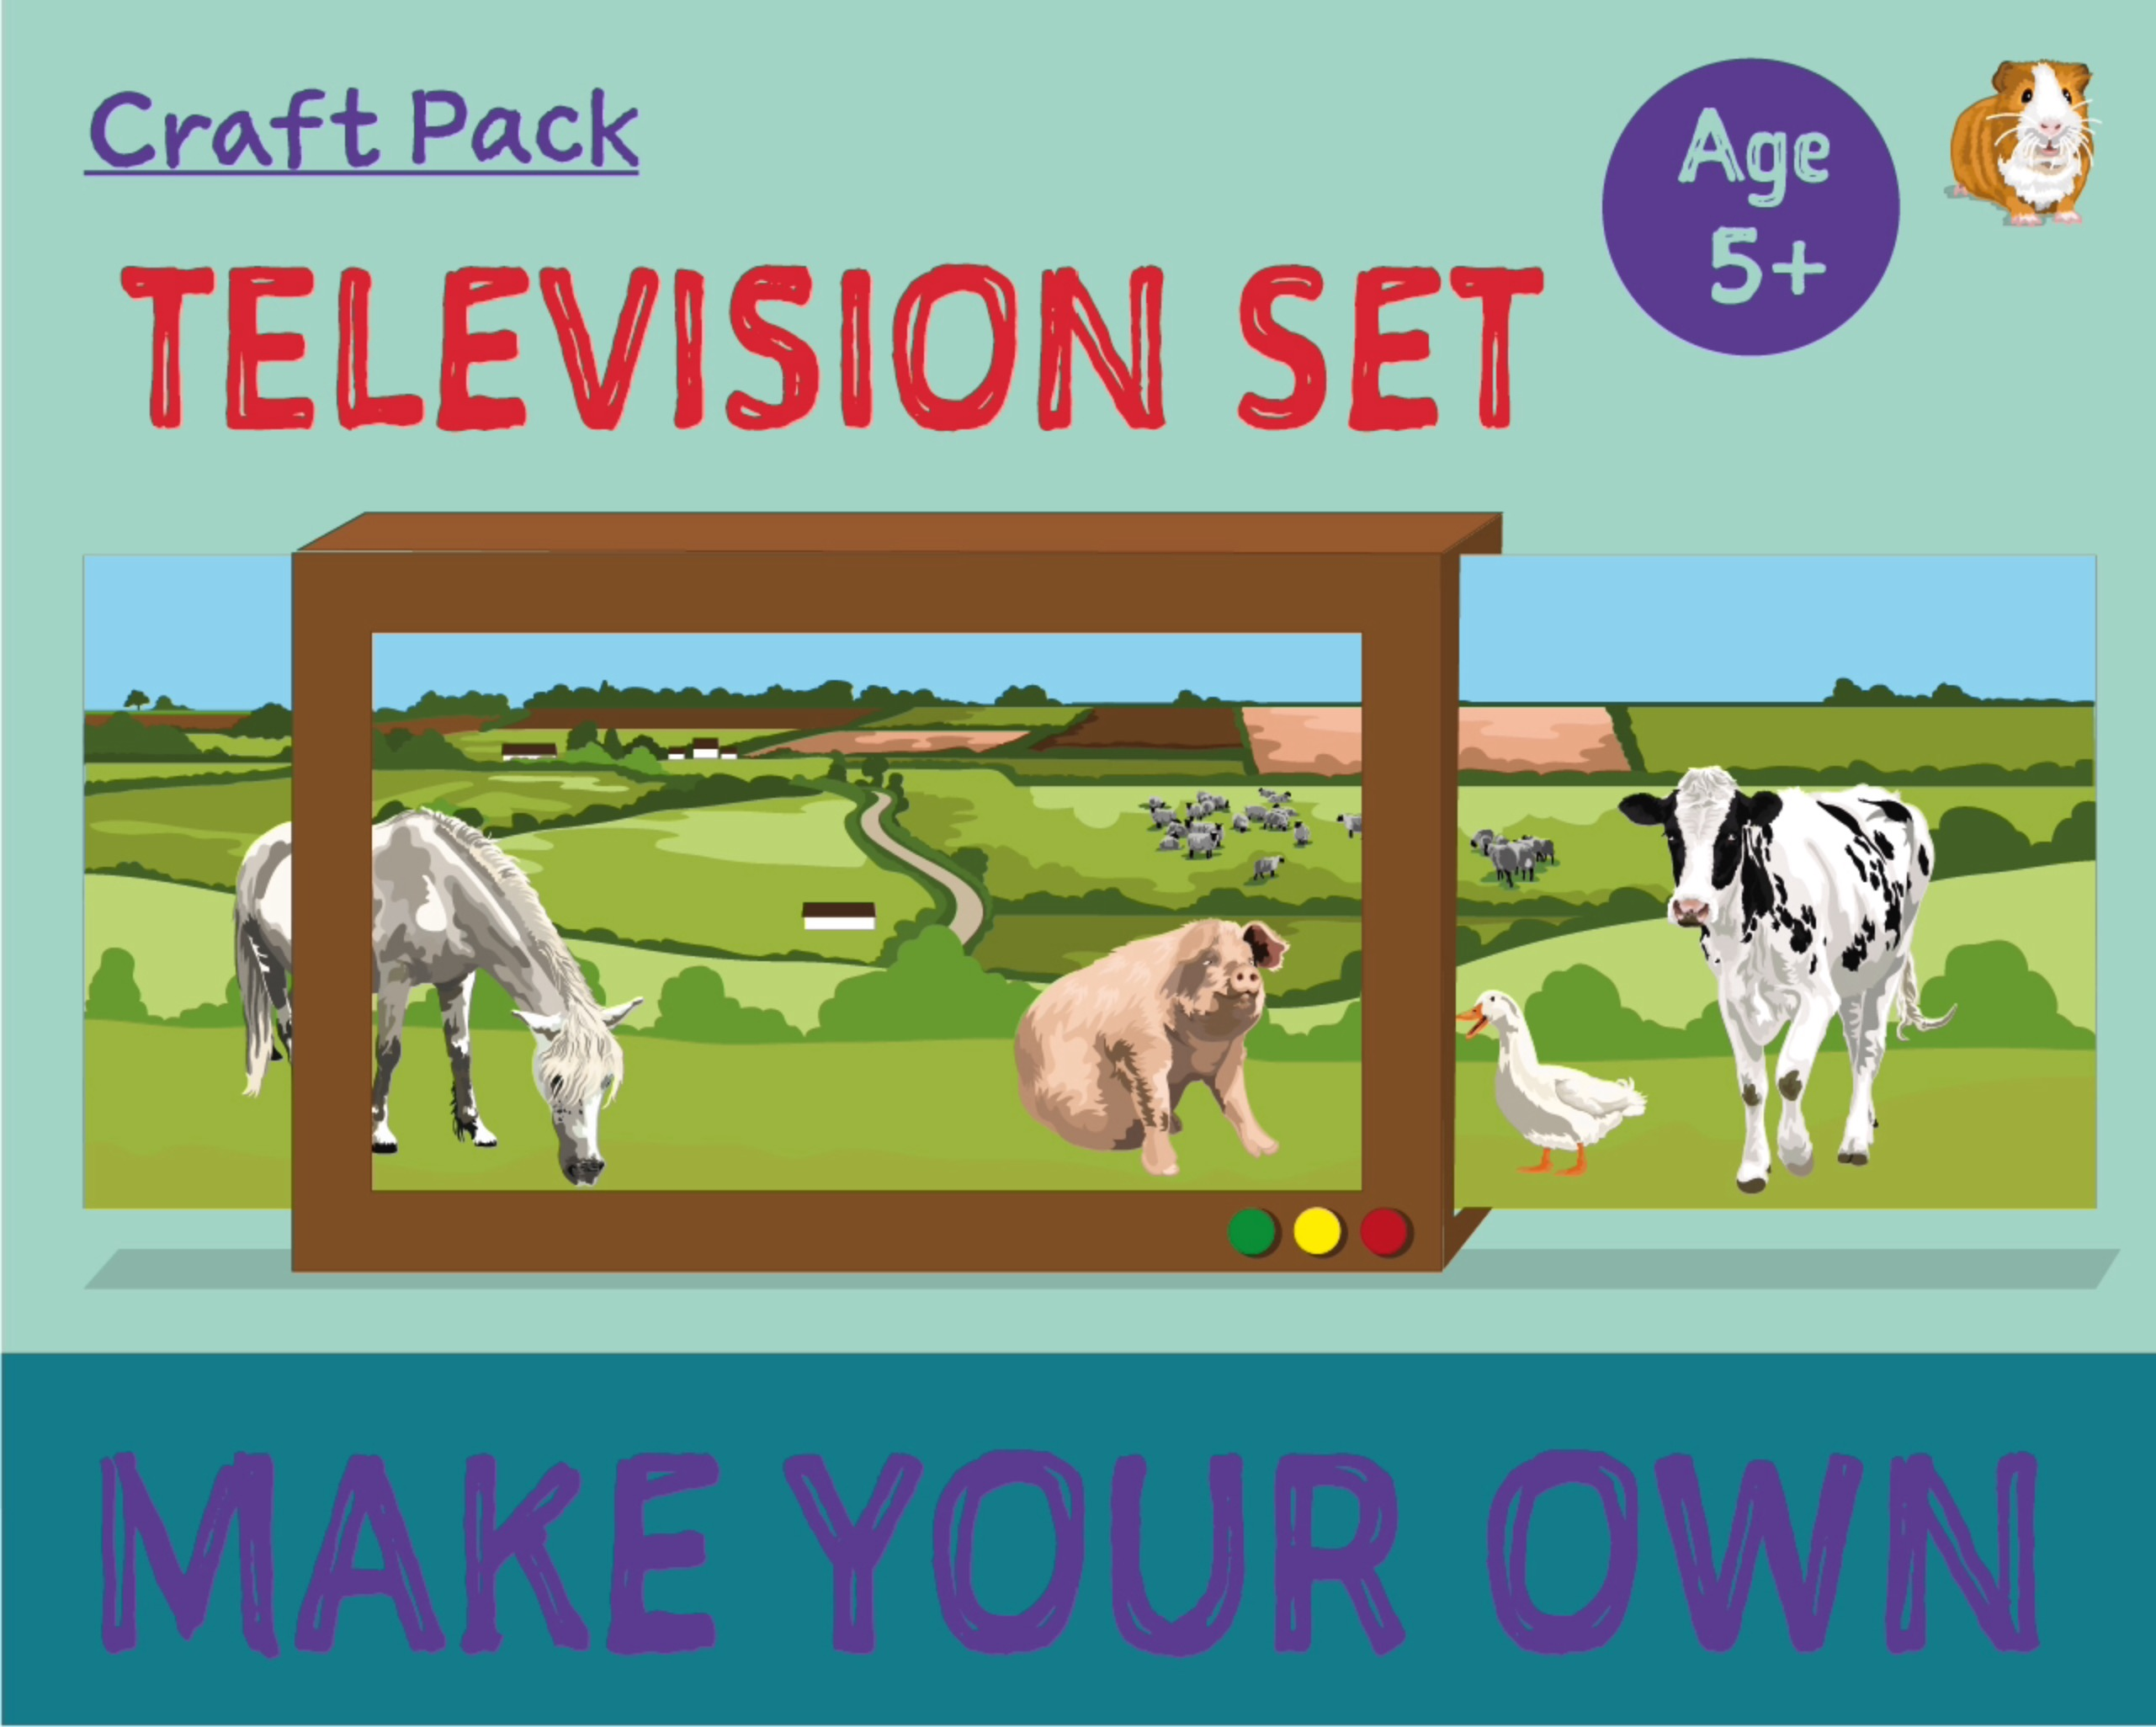 Craft Pack: Make A Television Set (4 years +)